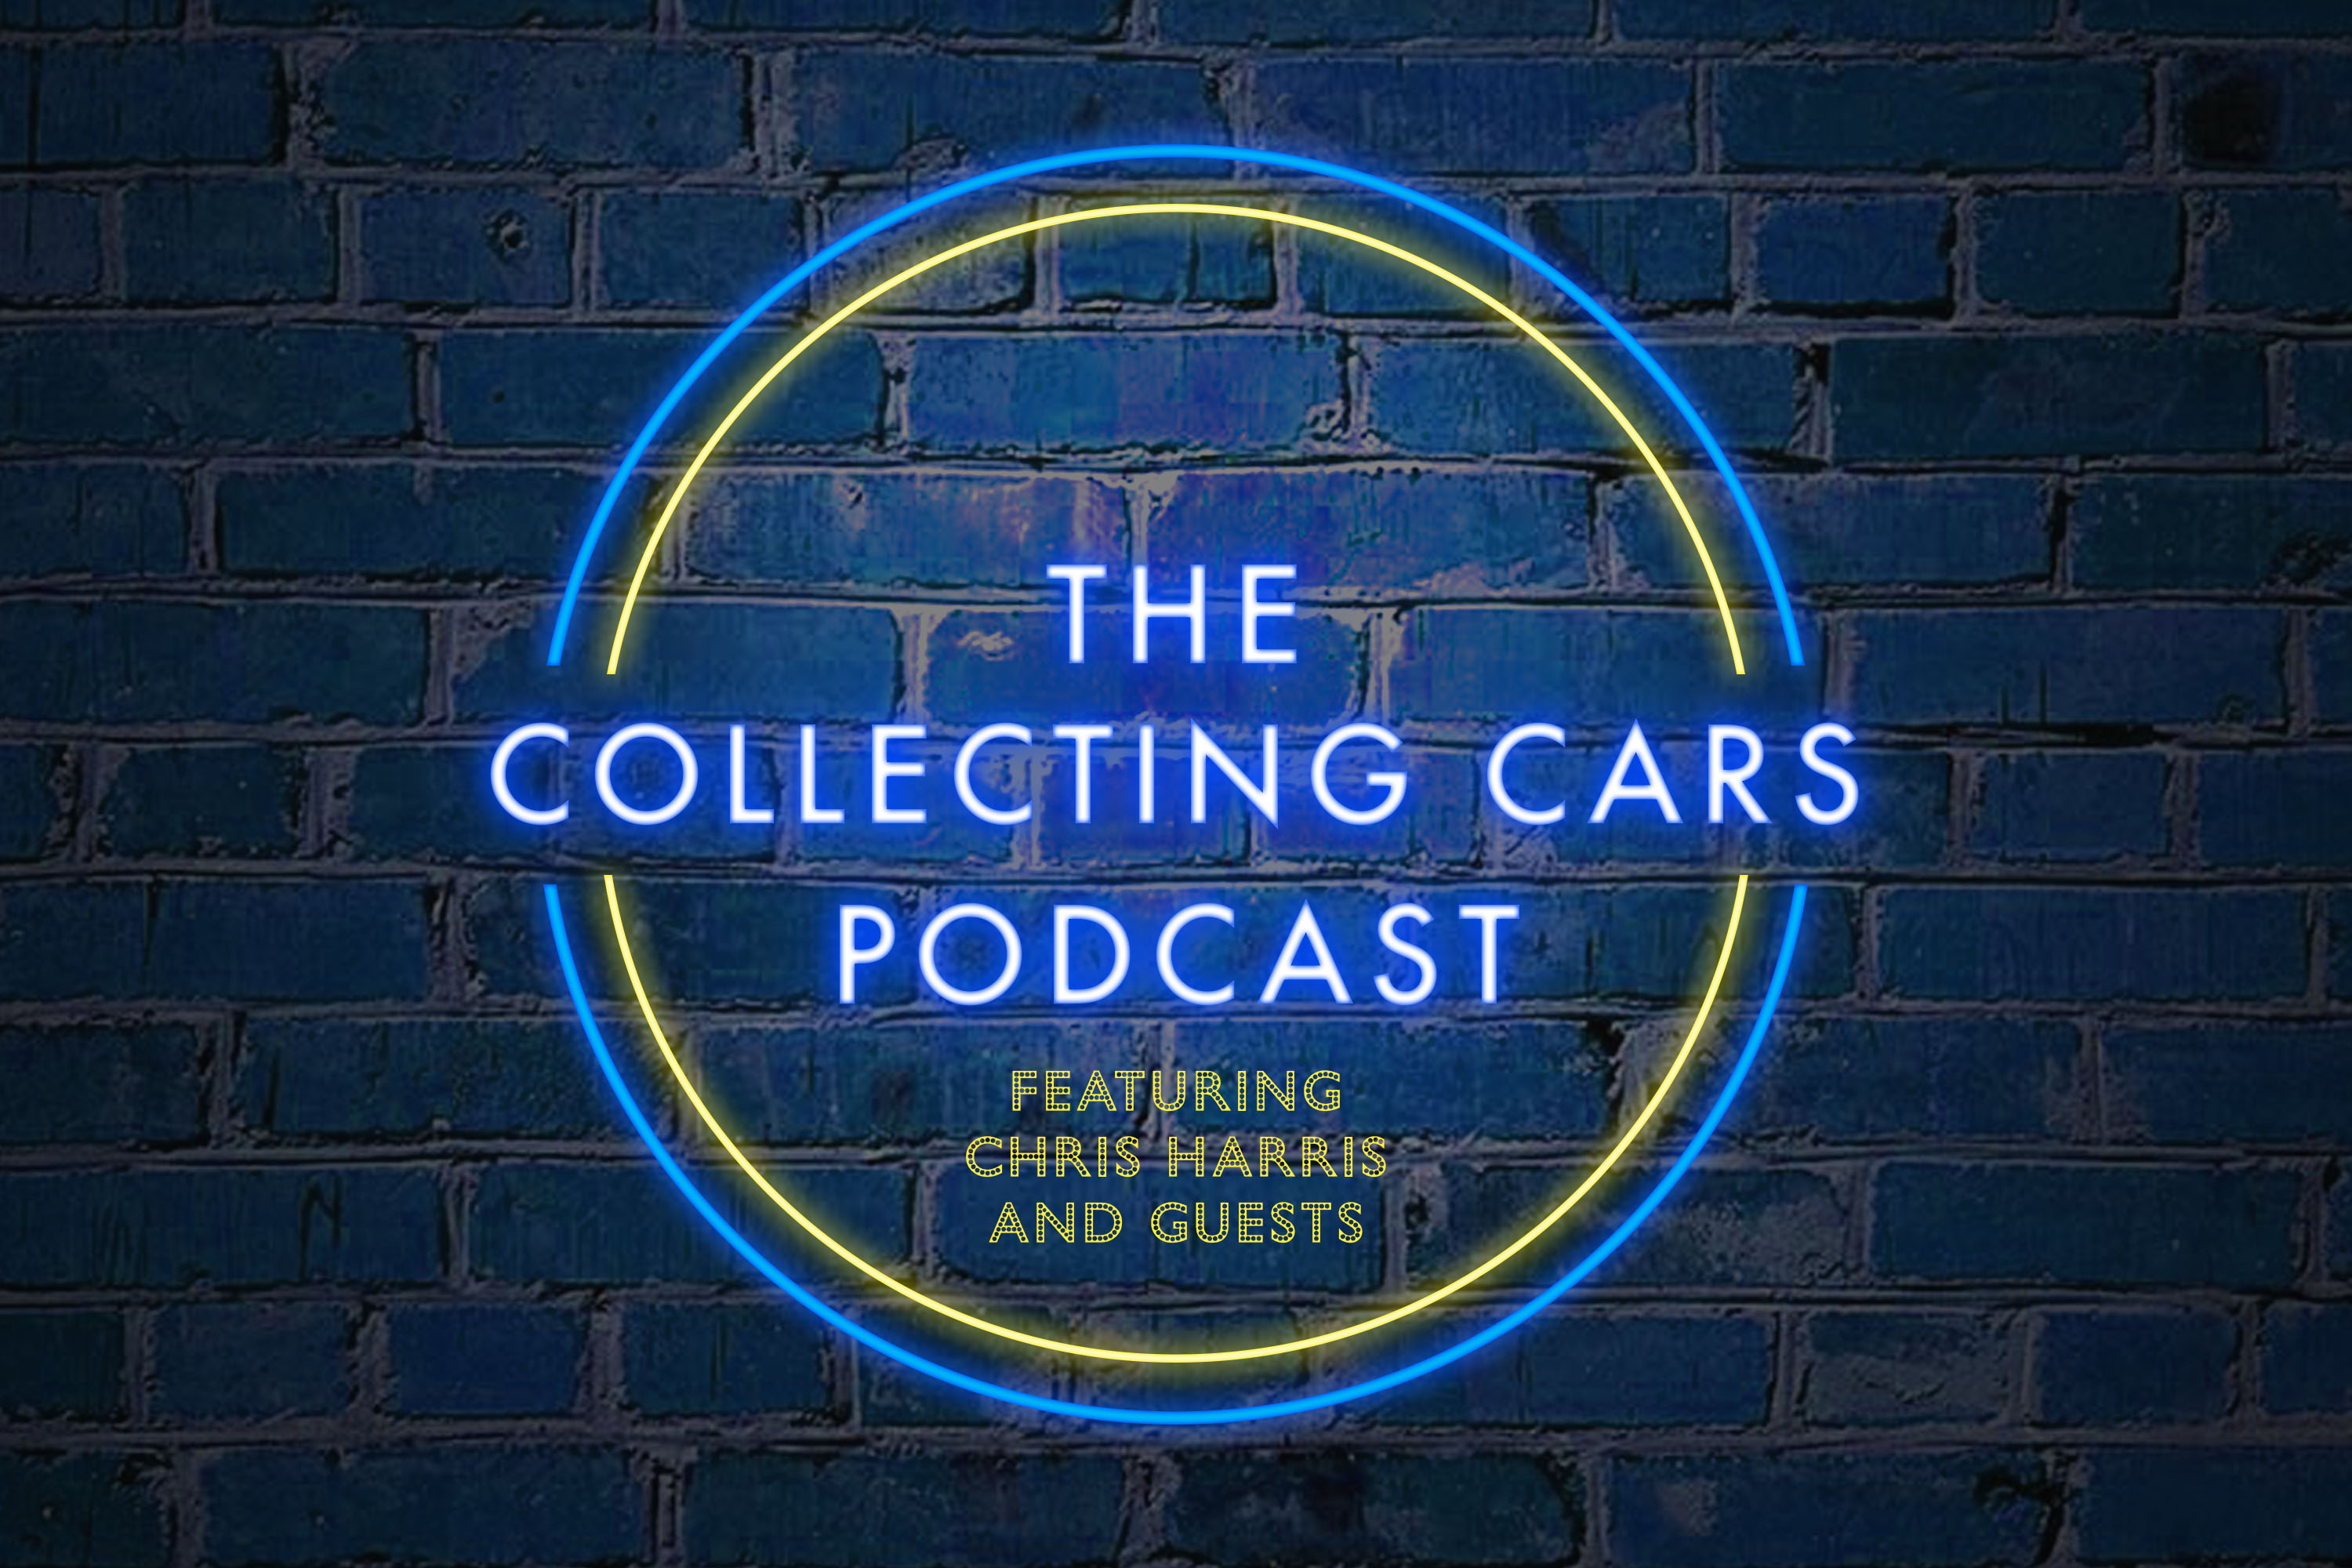 The Collecting Cars Podcast